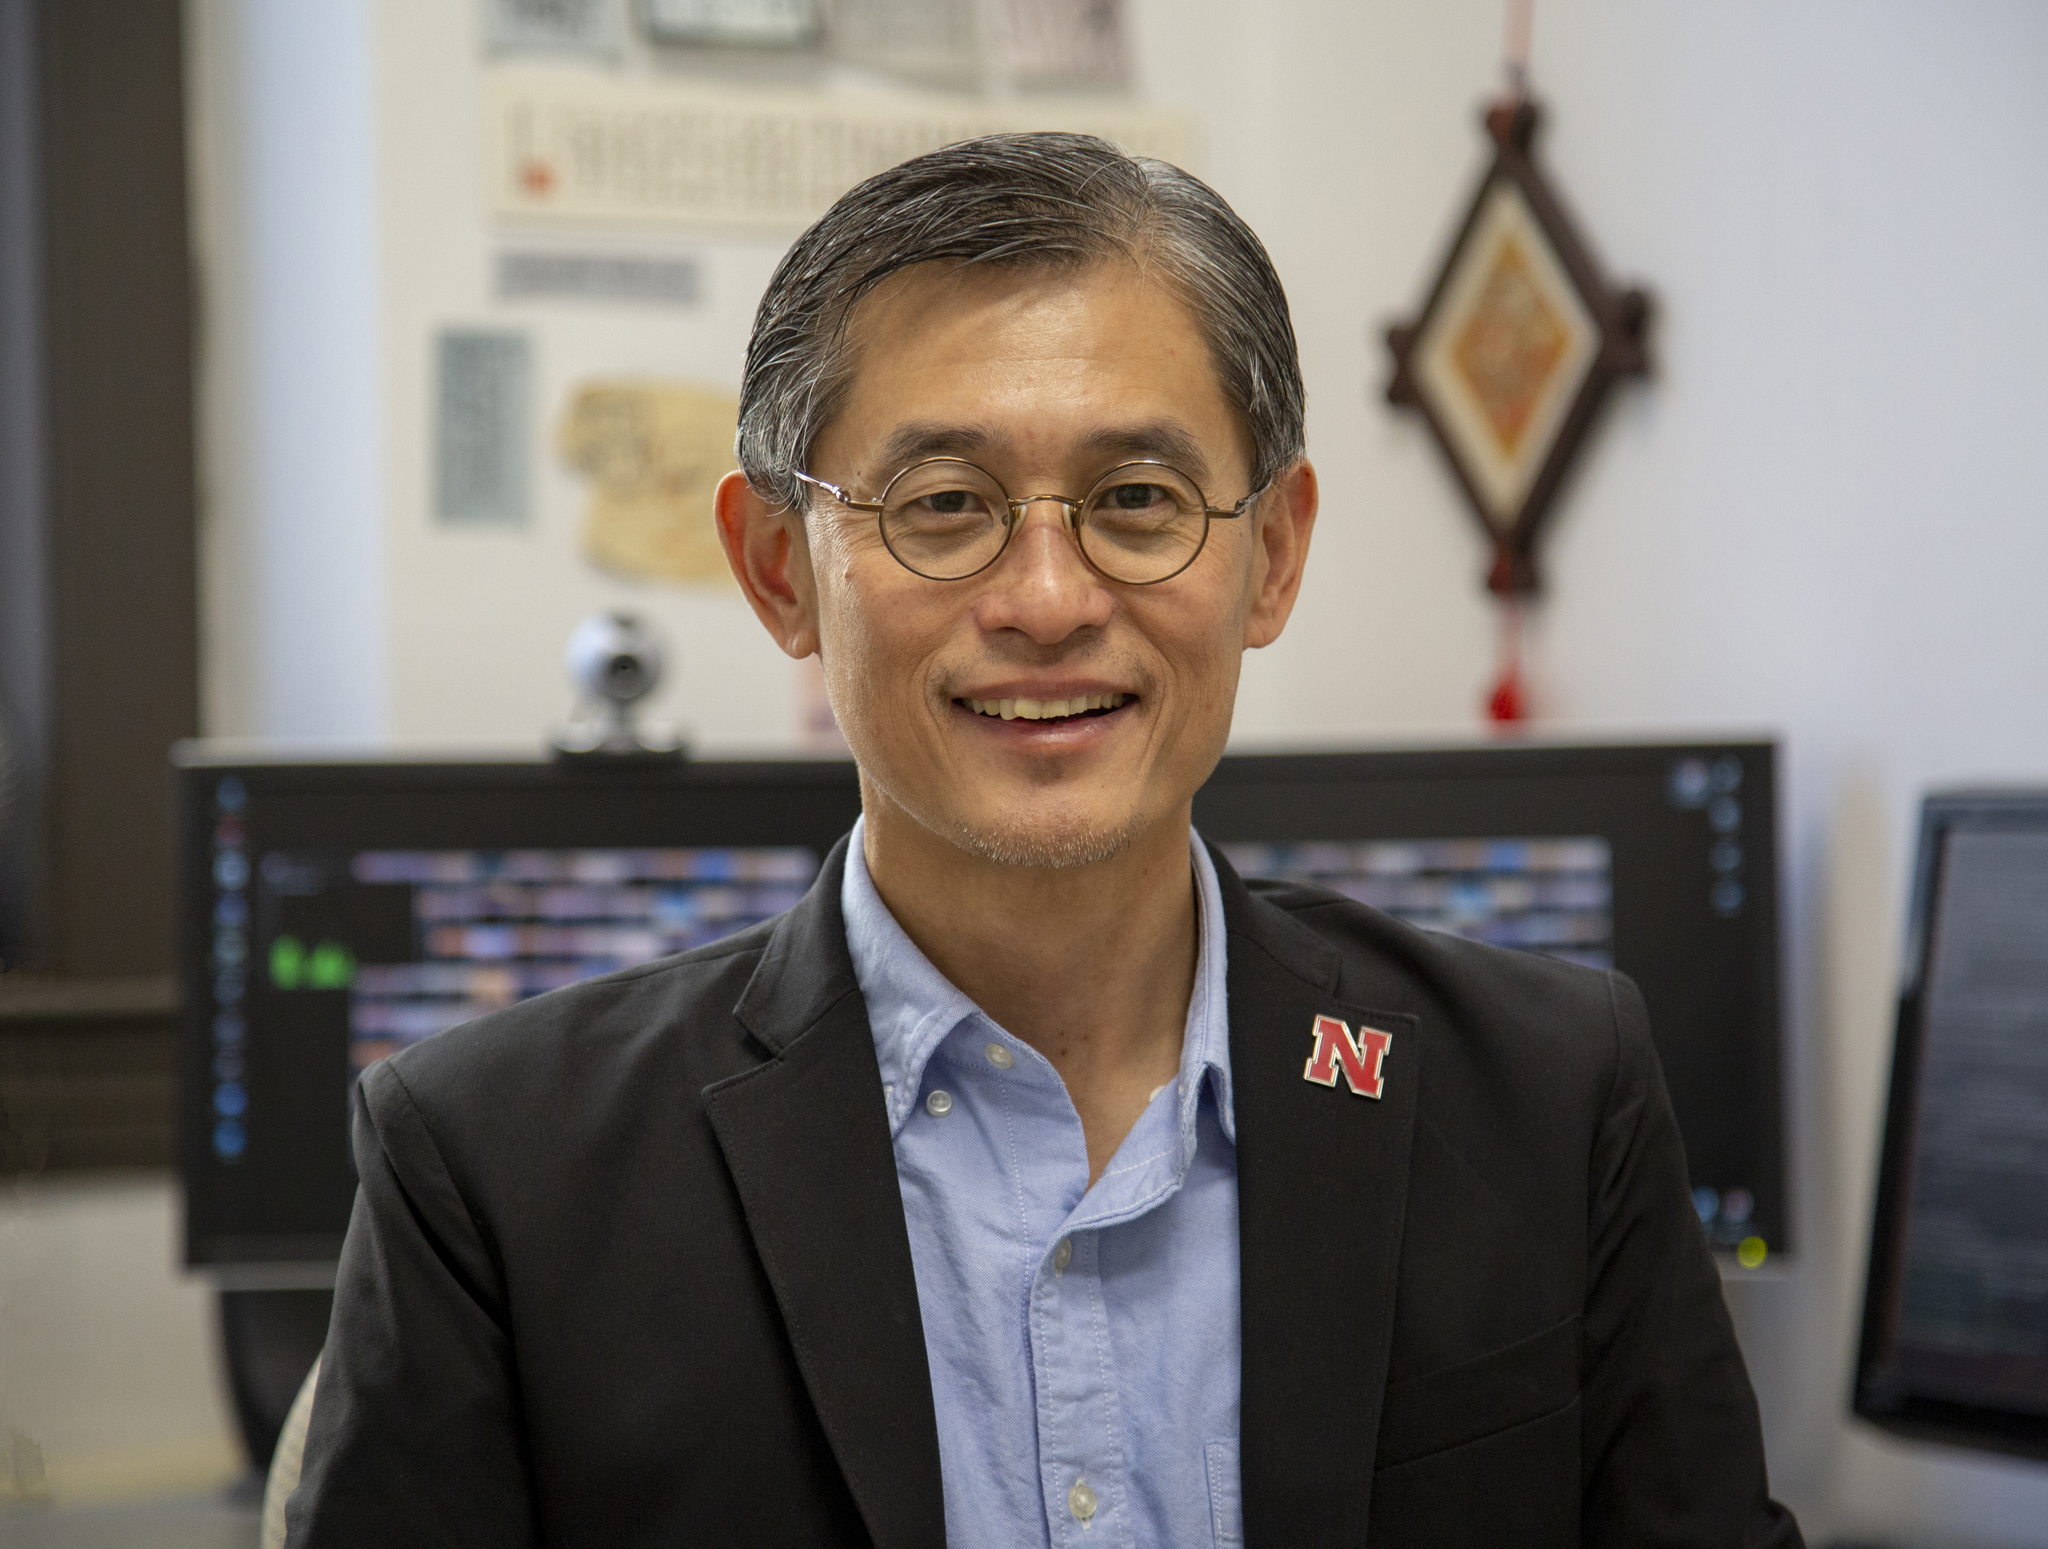 Computer Science and Engineering professor Leen-Kiat Soh. Photo courtesy of Nebraska Today.